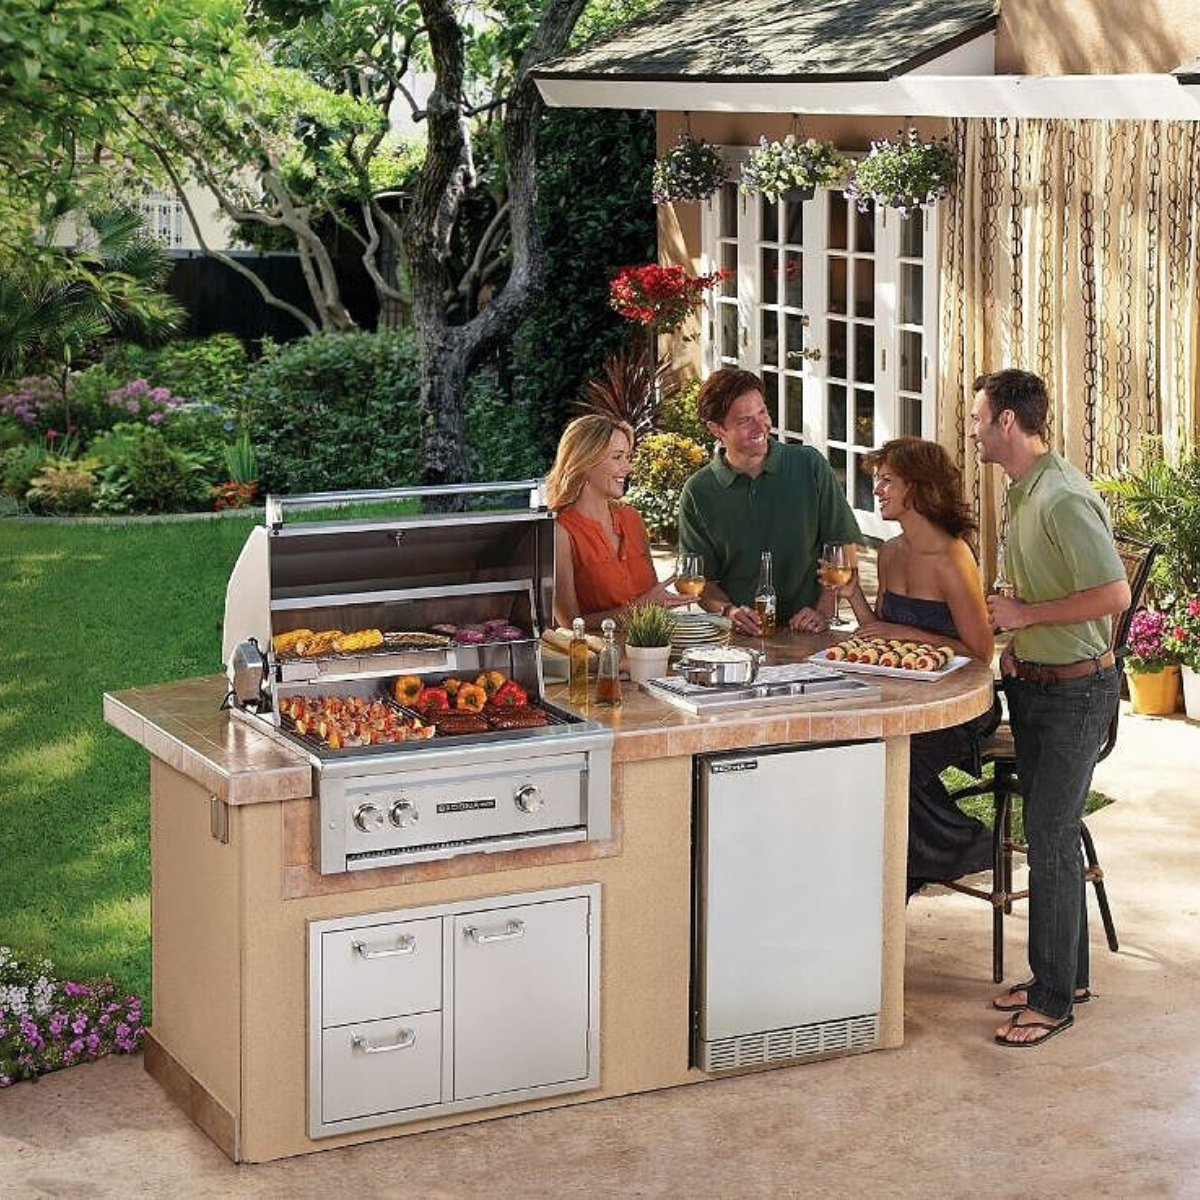 Shop Grills And Grilling Accessories At Milcarsky S Appliance Centre In 2020 Outdoor Kitchen Appliances Outdoor Kitchen Outdoor Kitchen Design